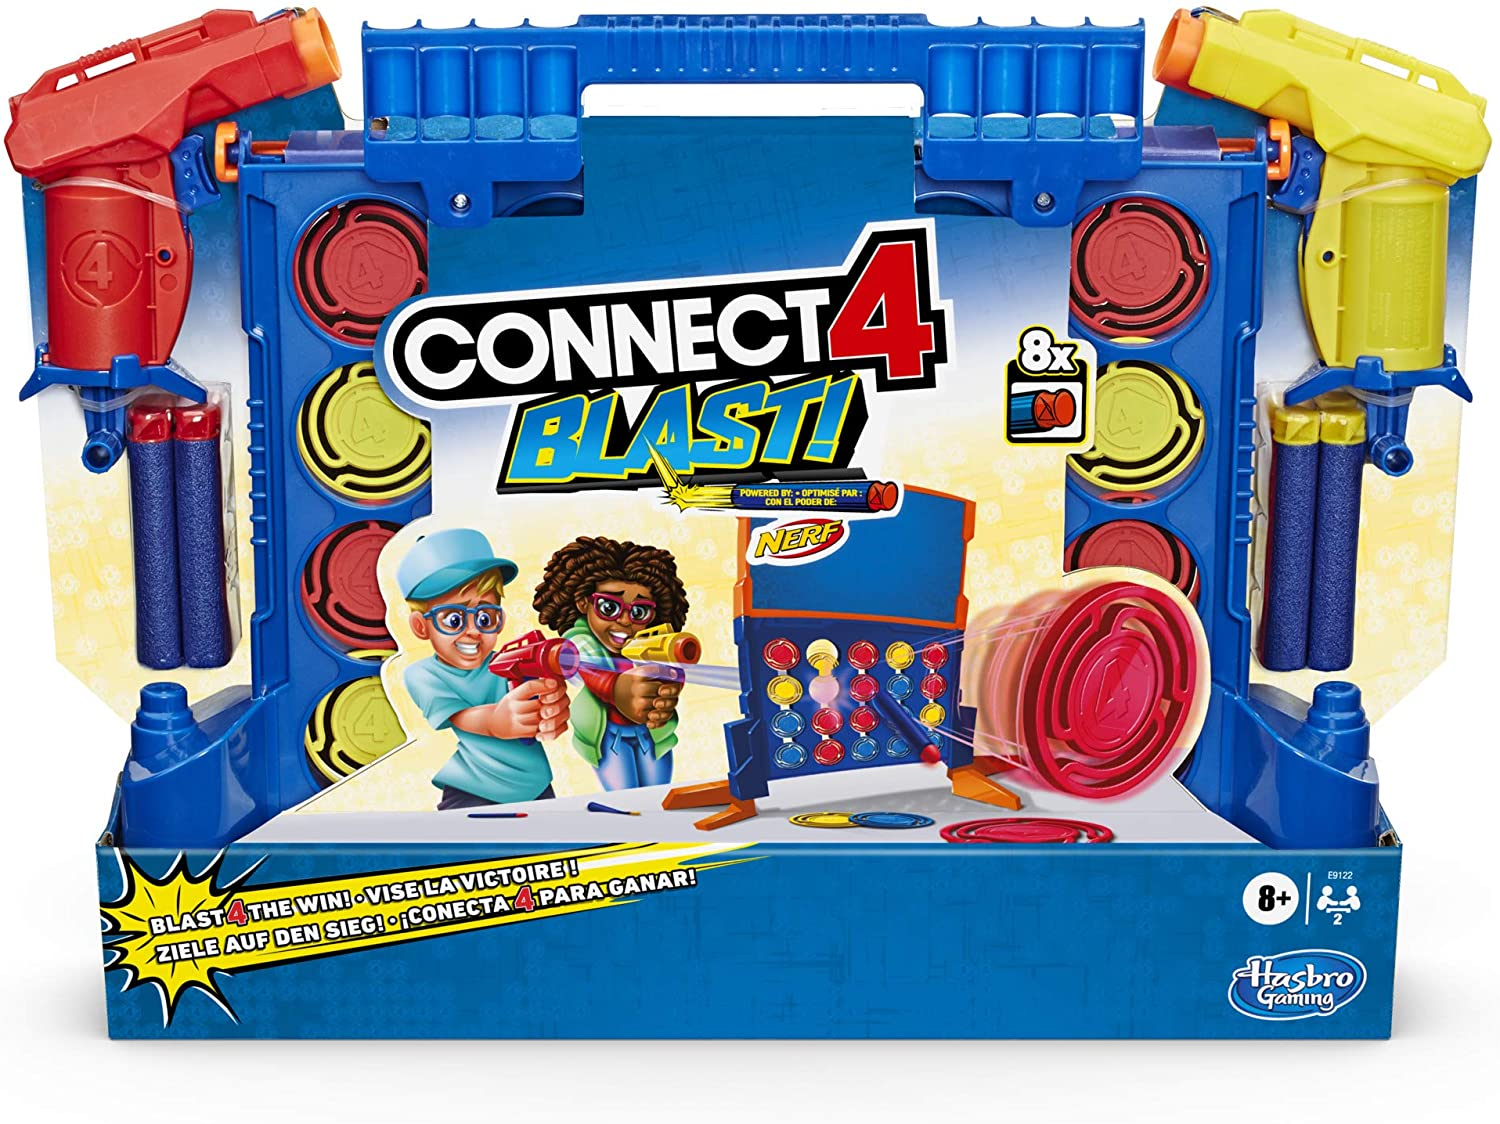 Connect 4 Blast! Game; Powered by Nerf; Includes Nerf Blasters and Nerf Foam Darts; Game for Children Aged 8 and Up